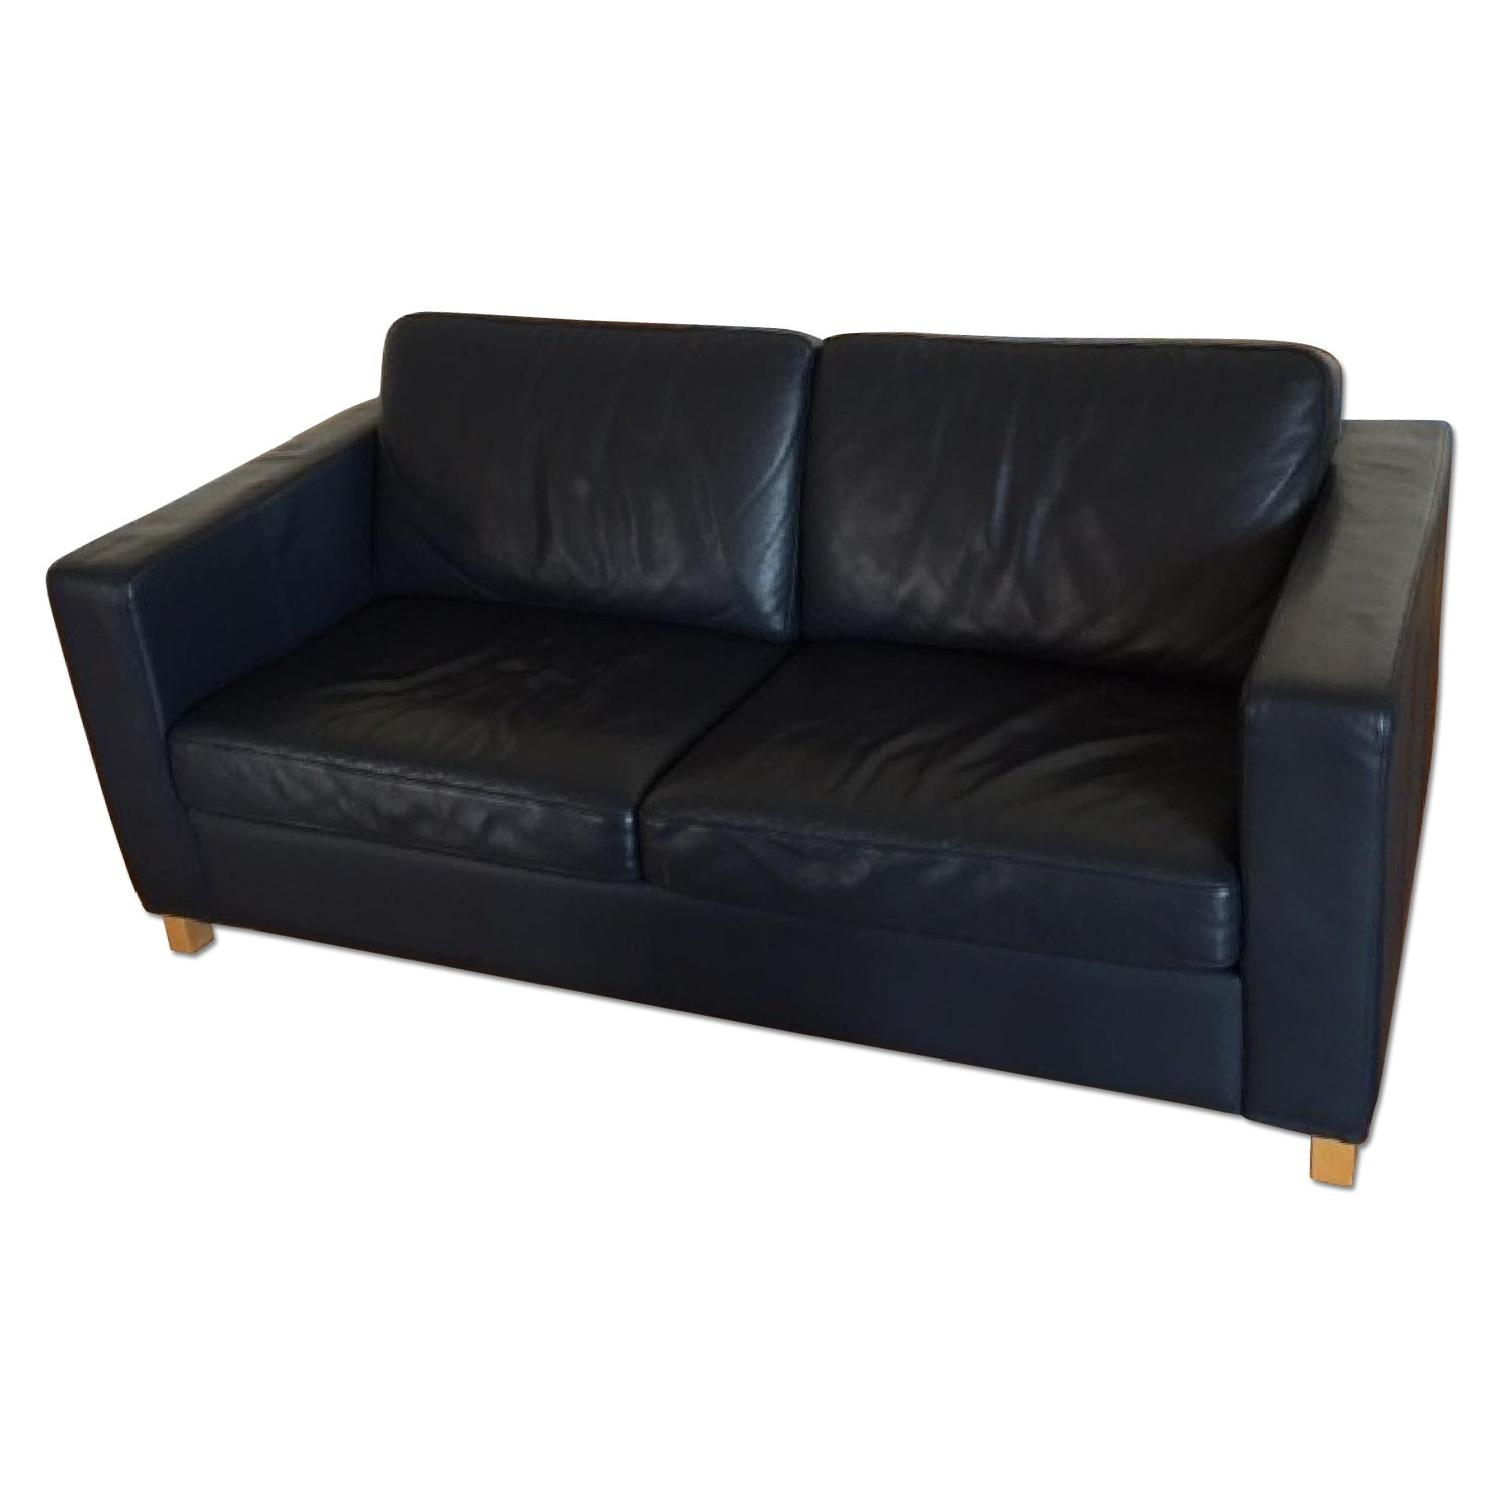 Ikea Balkarp Sofa Bed in Blue AptDeco : 1500 1500 frame 0 from www.aptdeco.com size 1500 x 1500 jpeg 71kB